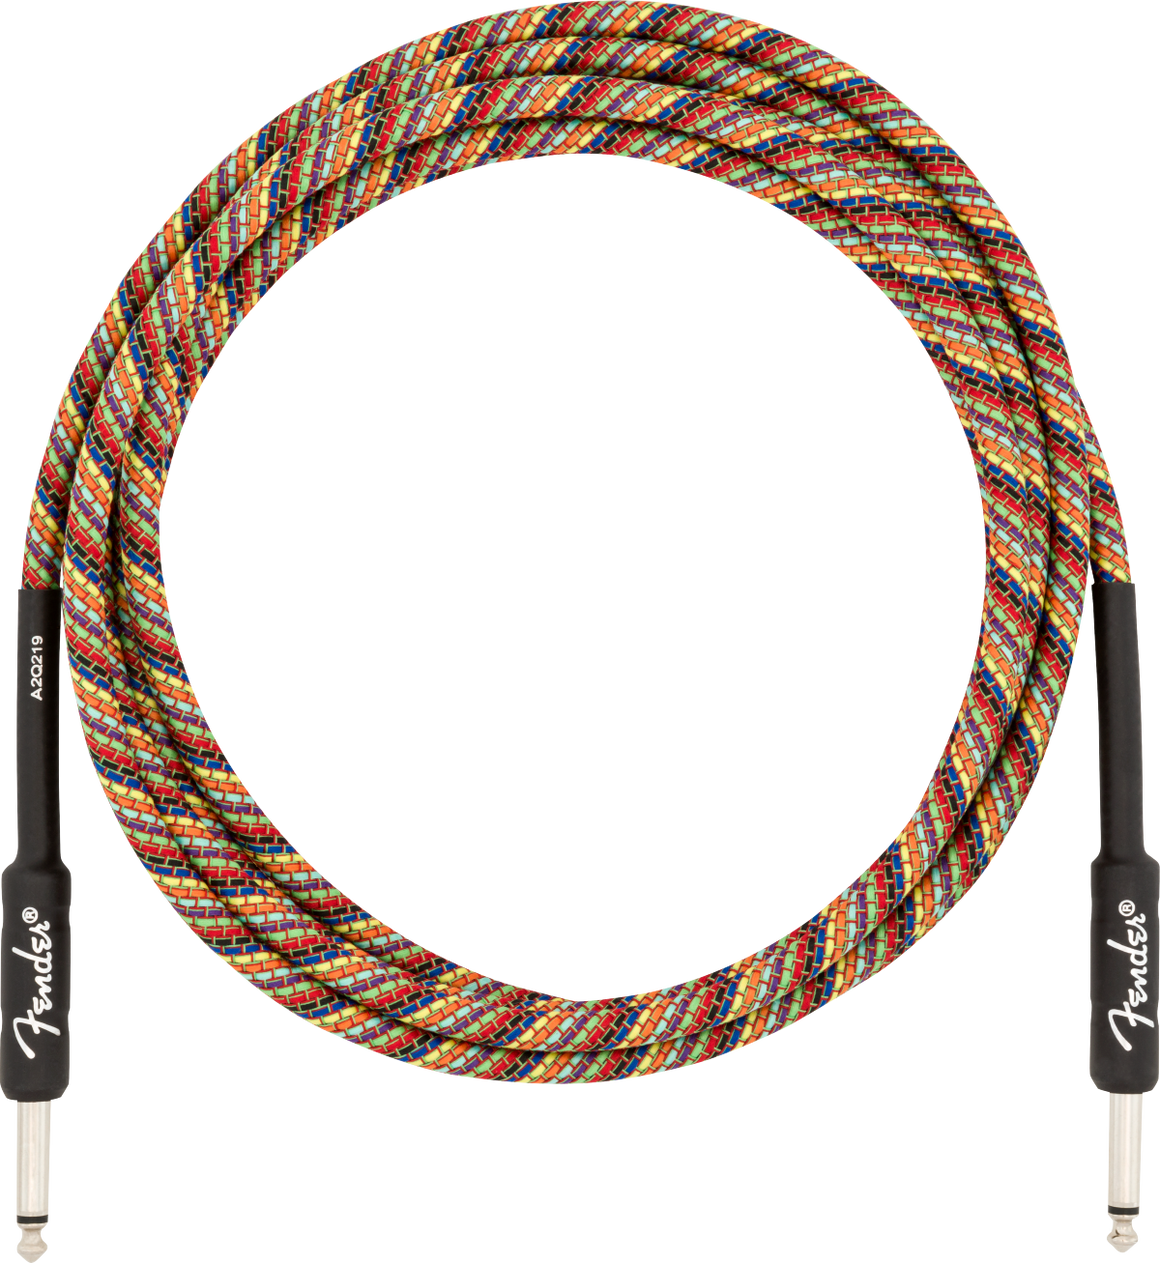 Fender 10' INST CABLE, RAINBOW